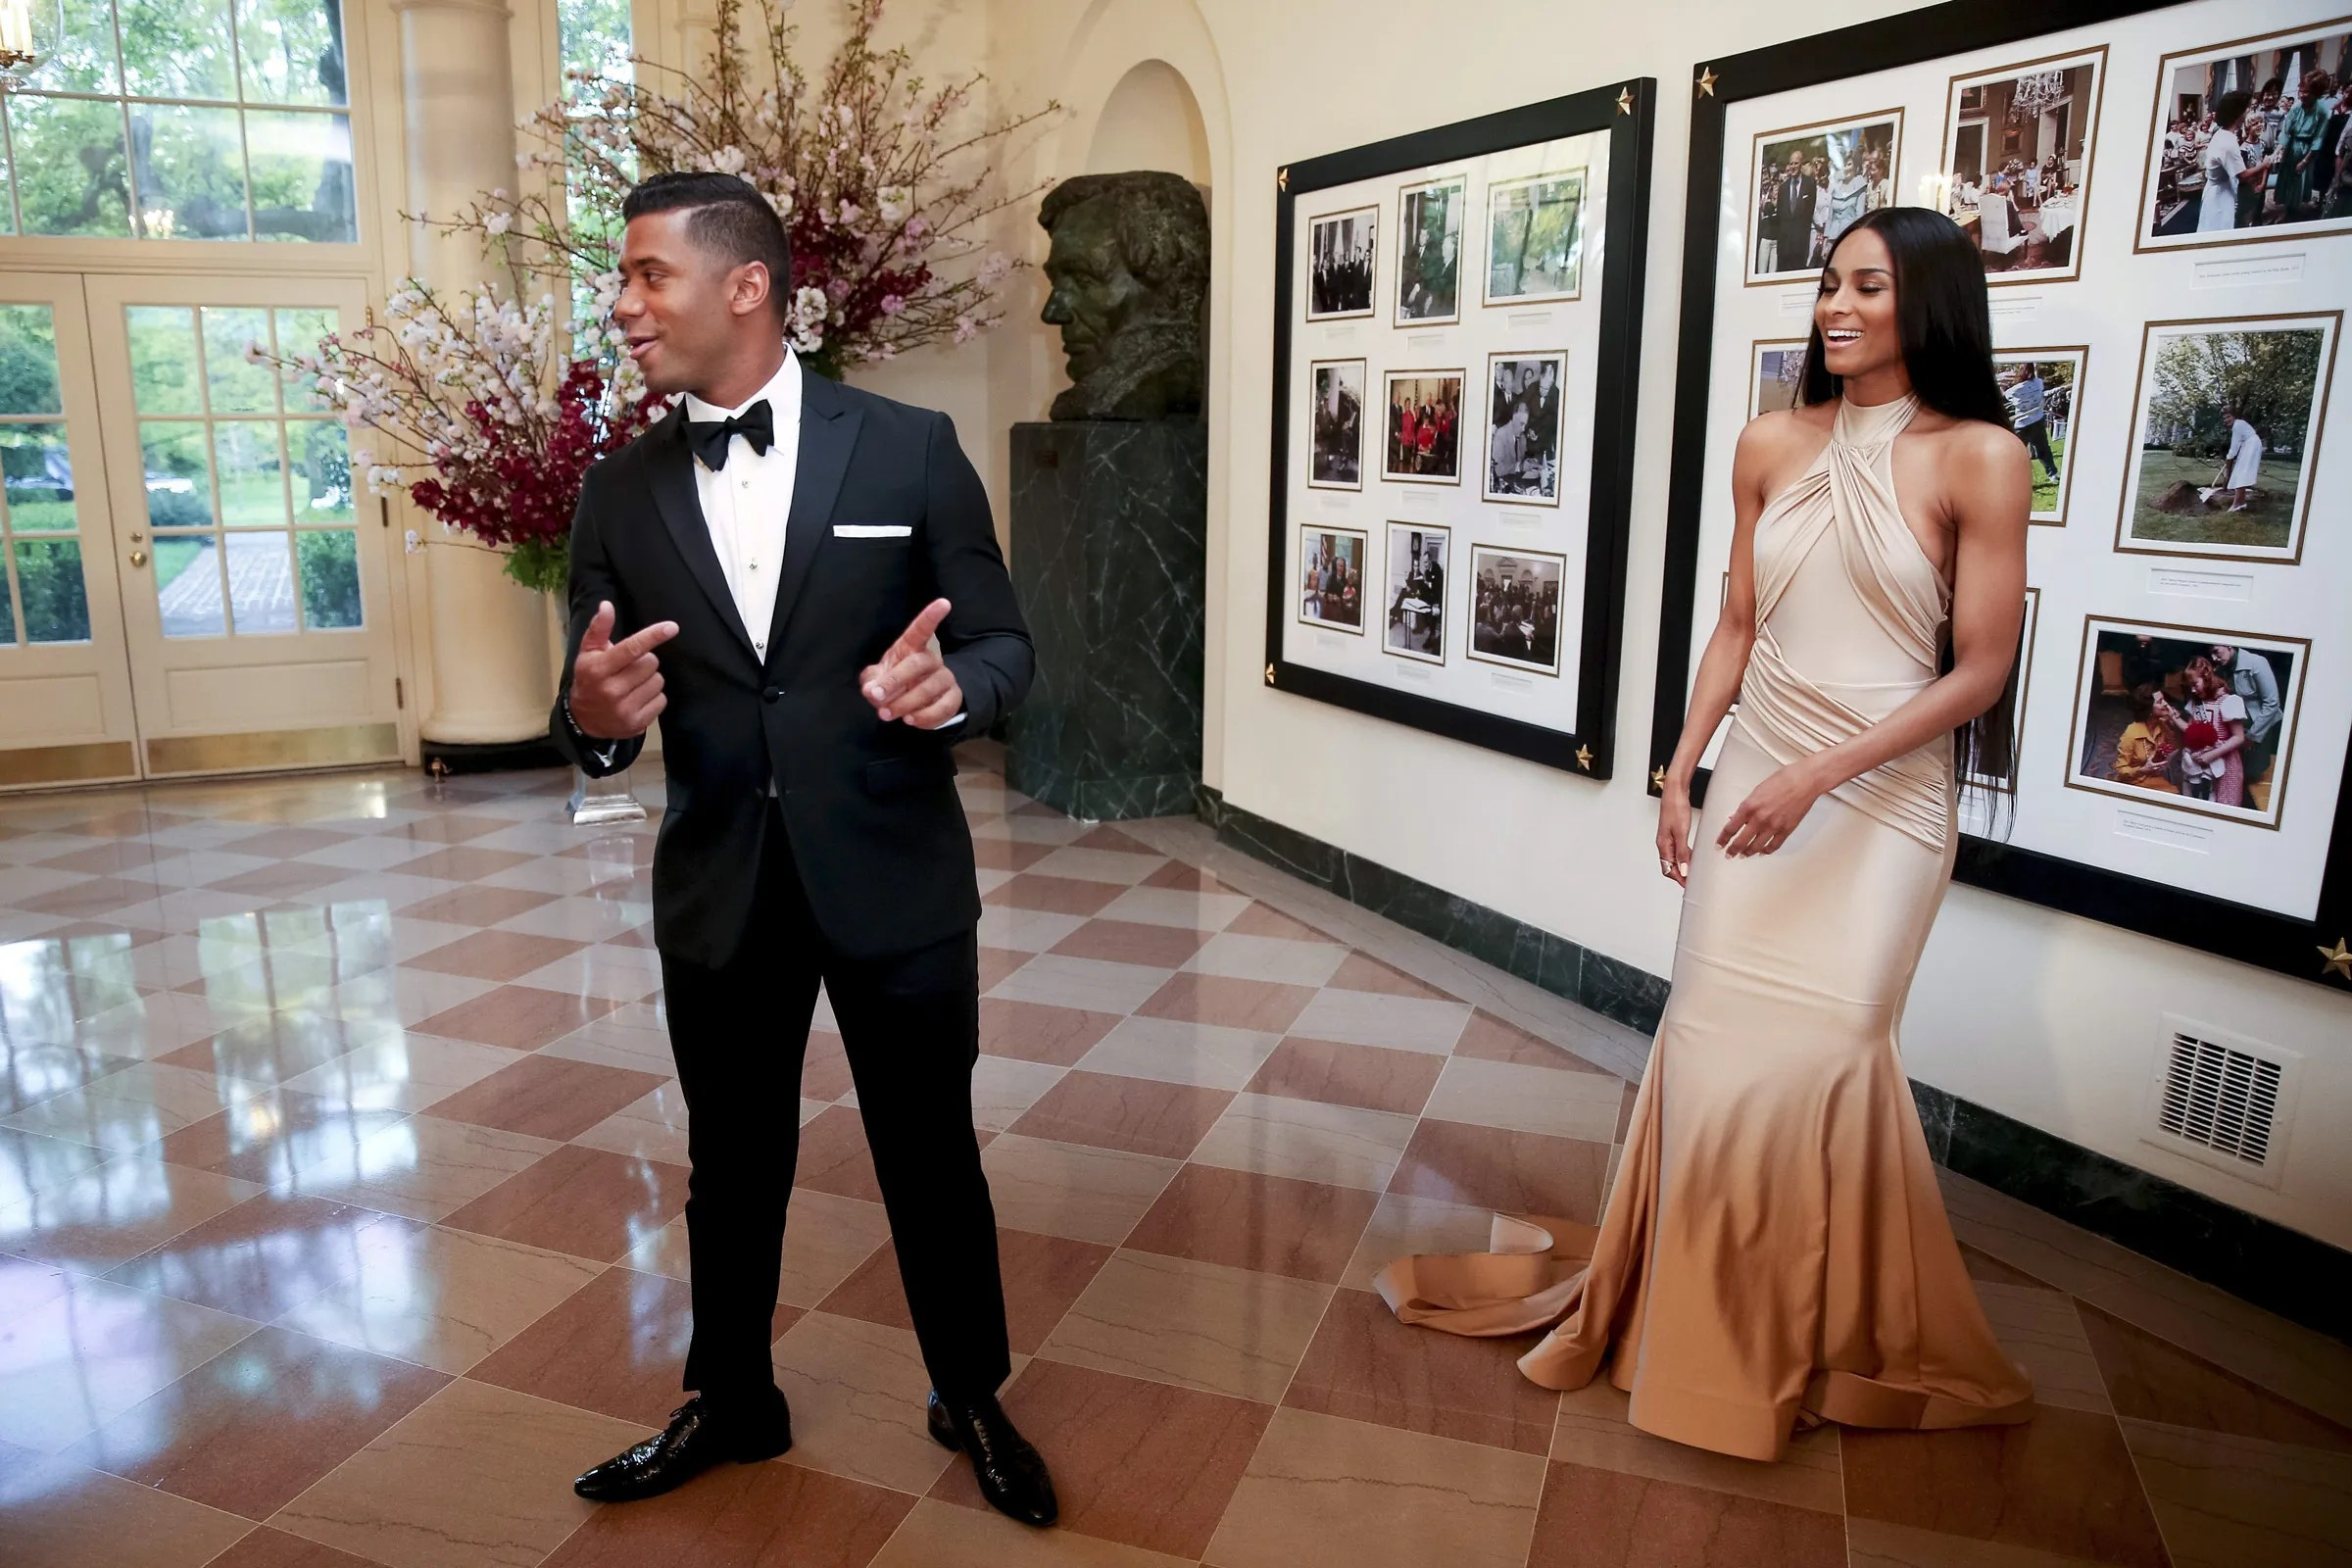 Seattle Seahawks Quarterback Russell Wilson and entertainer Ciara Harris arrive for a state dinner for Japanese Prime Minister Shinzo Abe, Tuesday, April 28, 2015, at the White House in Washington.  (Andrew Harnik / The Associated Press)